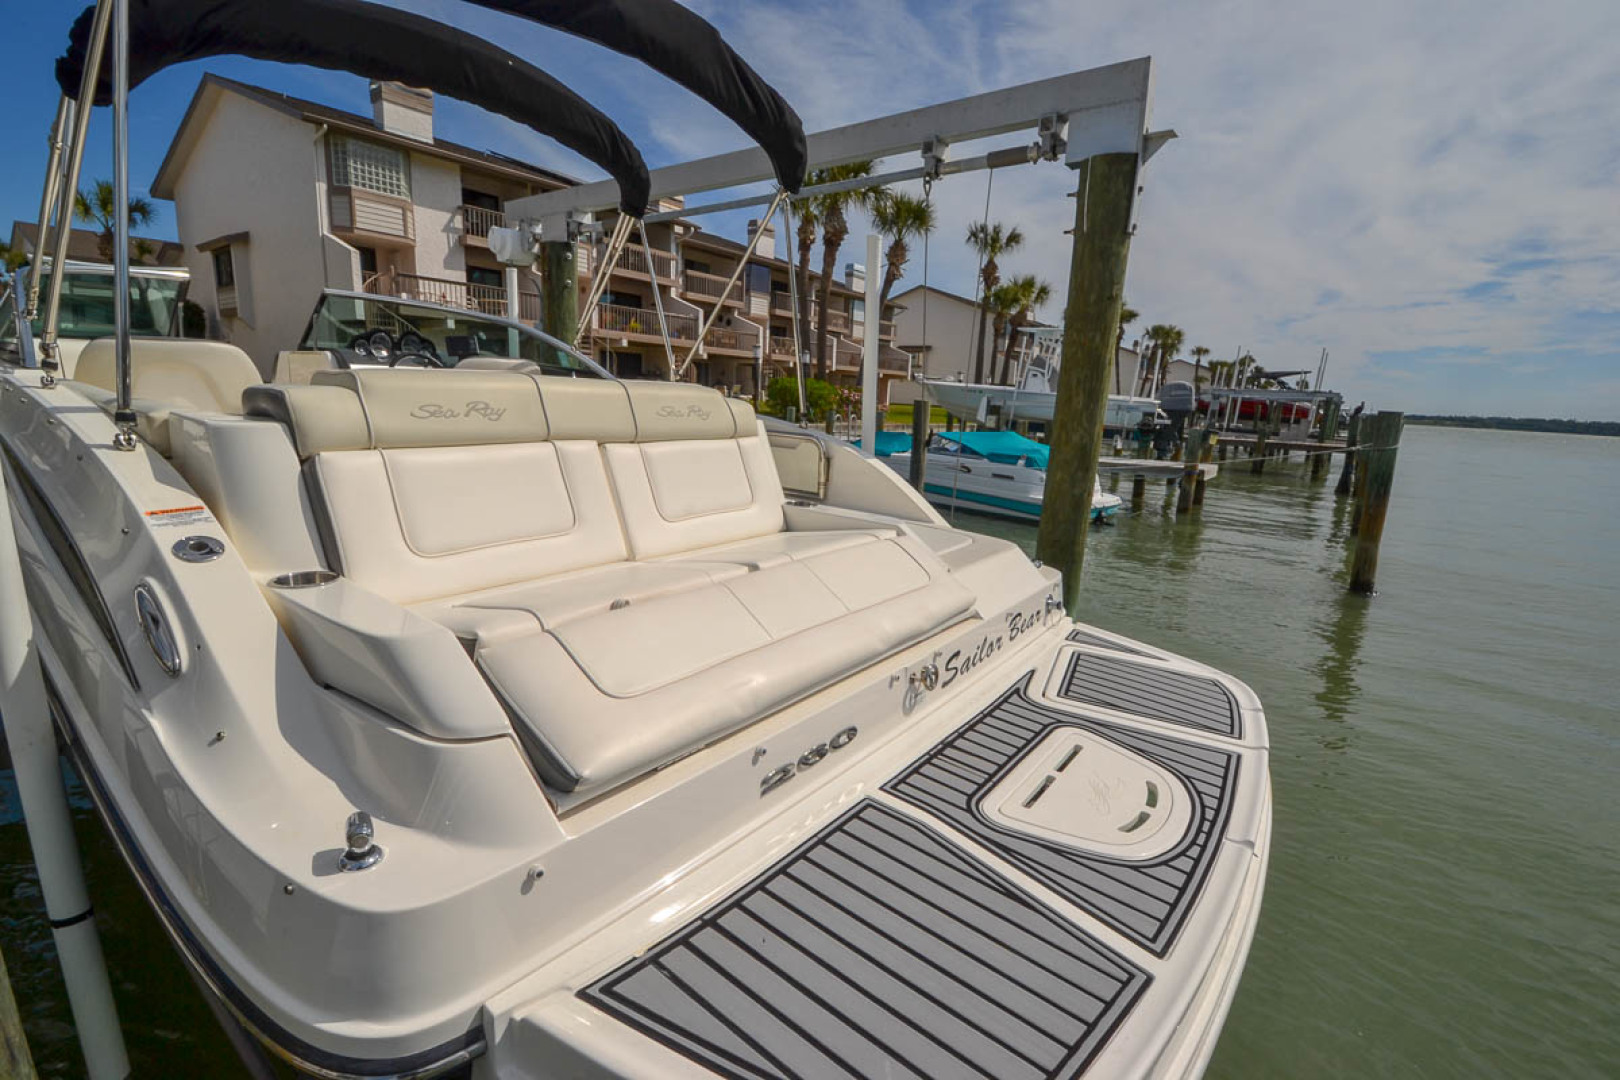 2012 Sea Ray 260 SunDeck-9.jpg